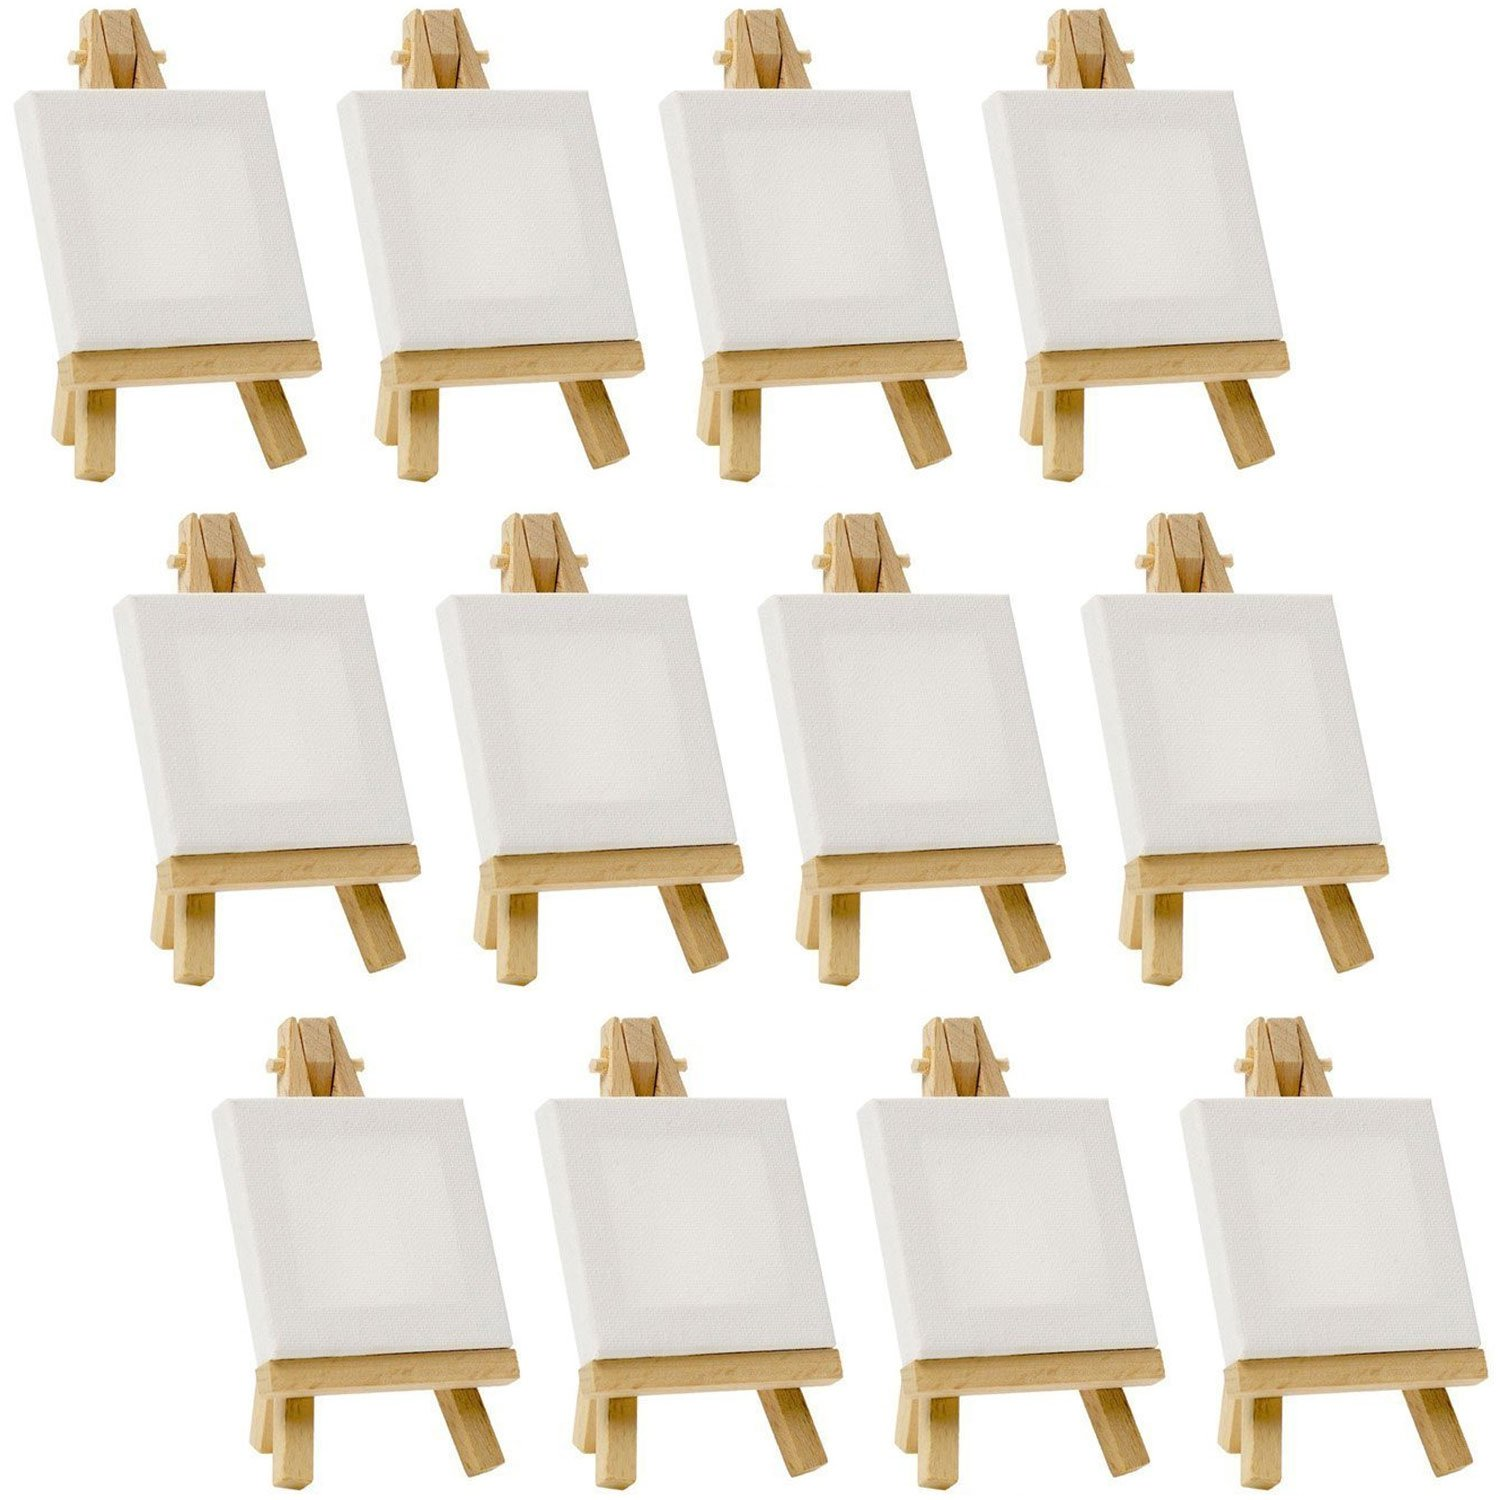 US Art Supply Artists 3''x3'' Mini Canvas & 5'' Mini Easel Set Painting Craft Drawing - Set Contains: 12 Mini Canvases & 12 Mini Easels